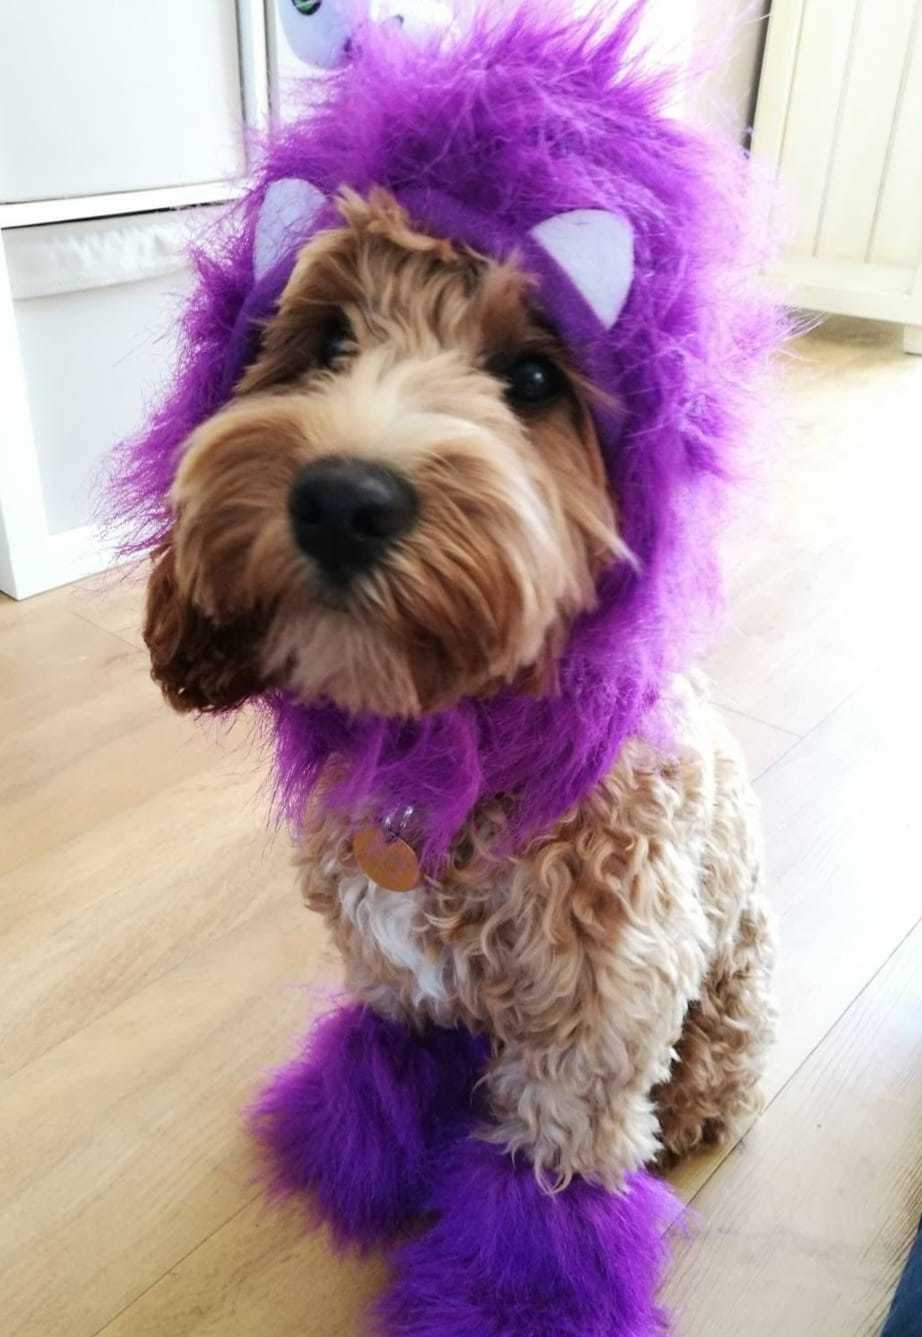 Check out these pawsomely adorable Halloween pets